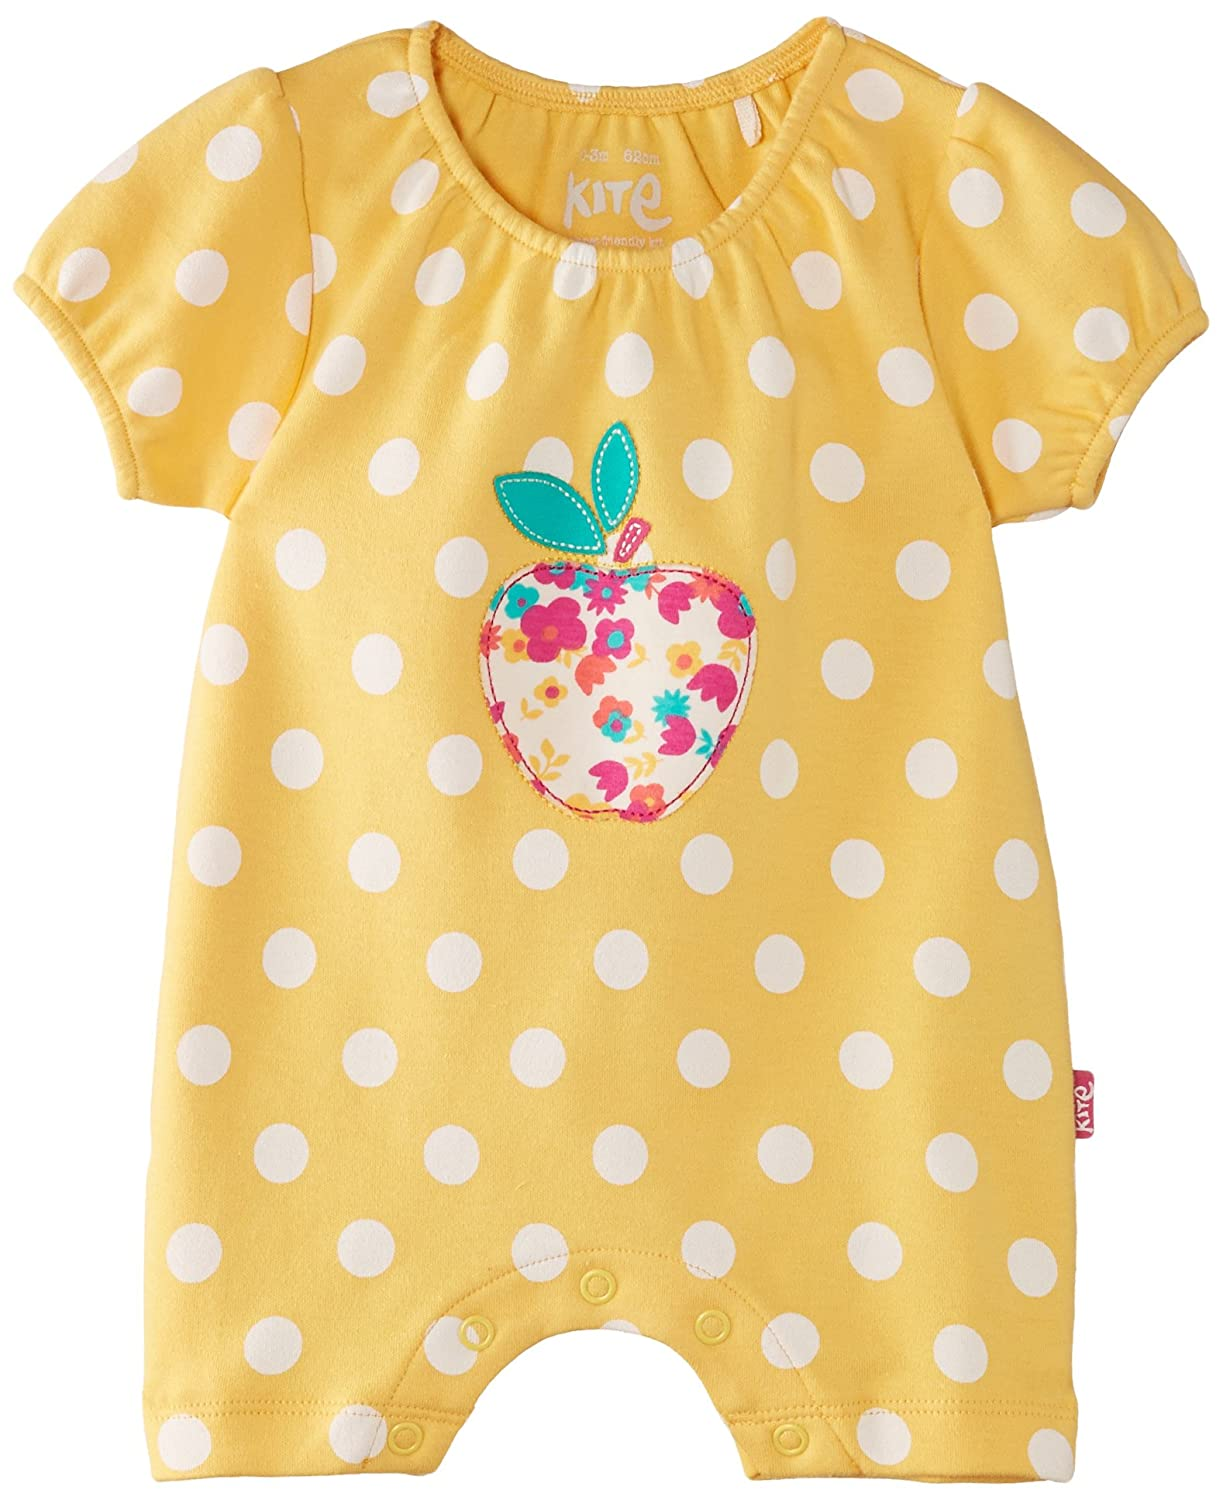 Shop For Cheap Penny & Co Zip Romper 18-24 Months Size 2 Pale Pink Baby & Toddler Clothing